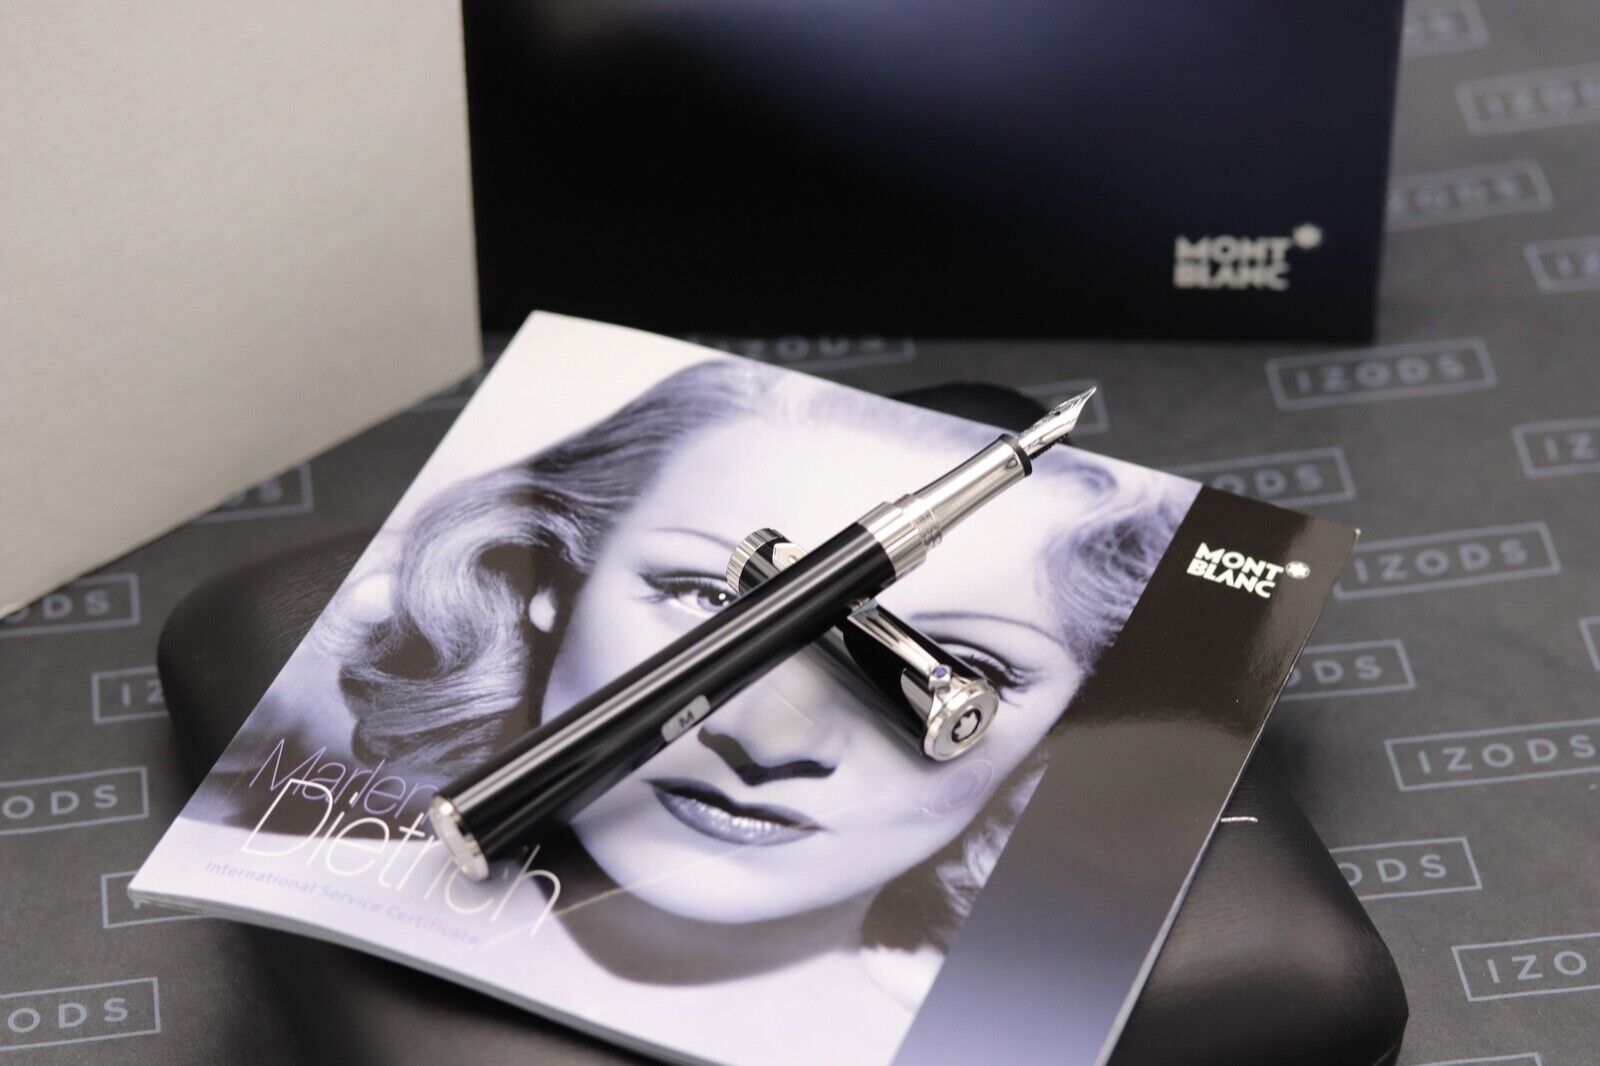 Montblanc Diva Line Marlene Dietrich Special Edition Fountain Pen - NEW MARCH 21